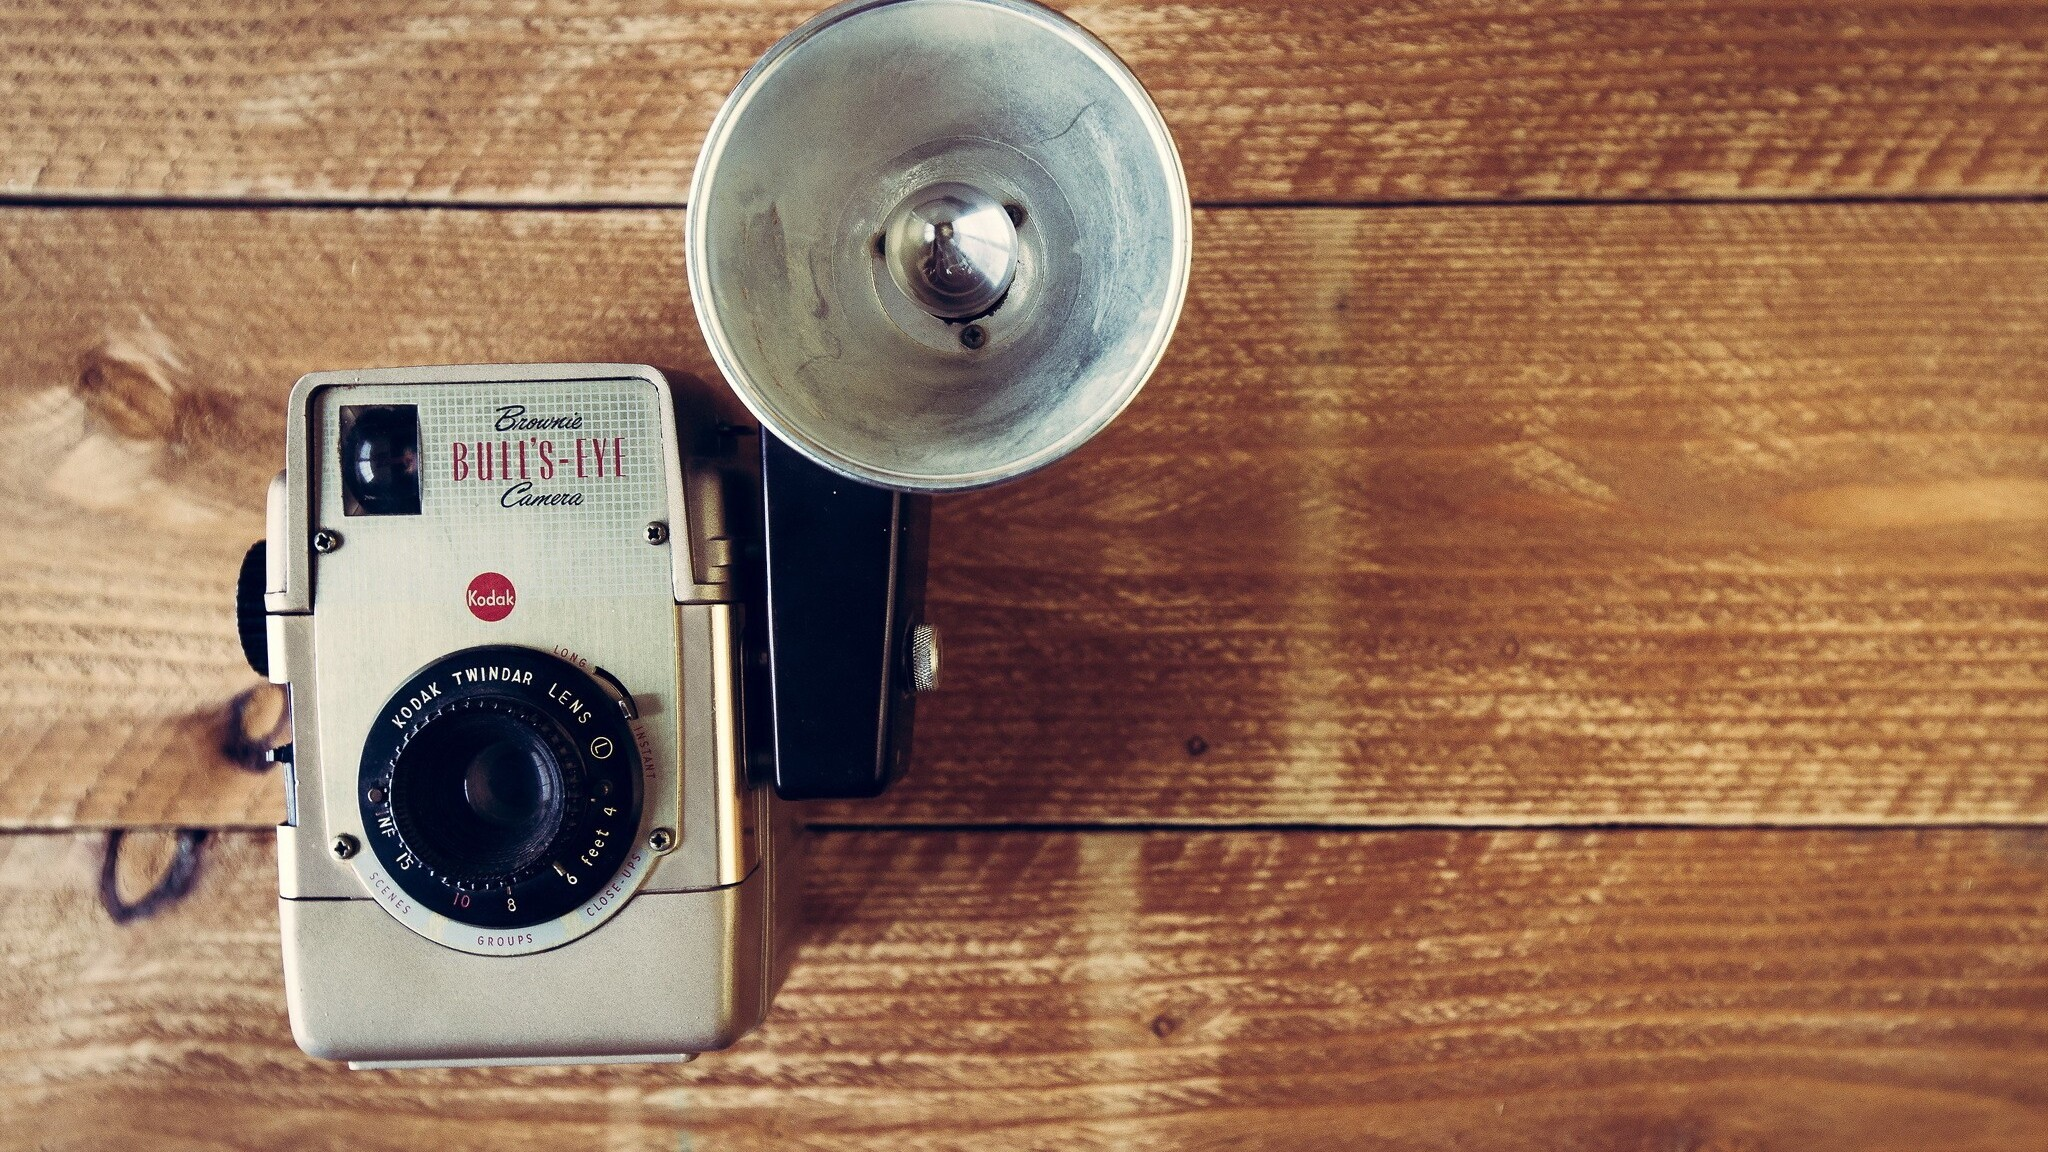 Camera Vintage Android : 2048x1152 camera vintage 2048x1152 resolution hd 4k wallpapers